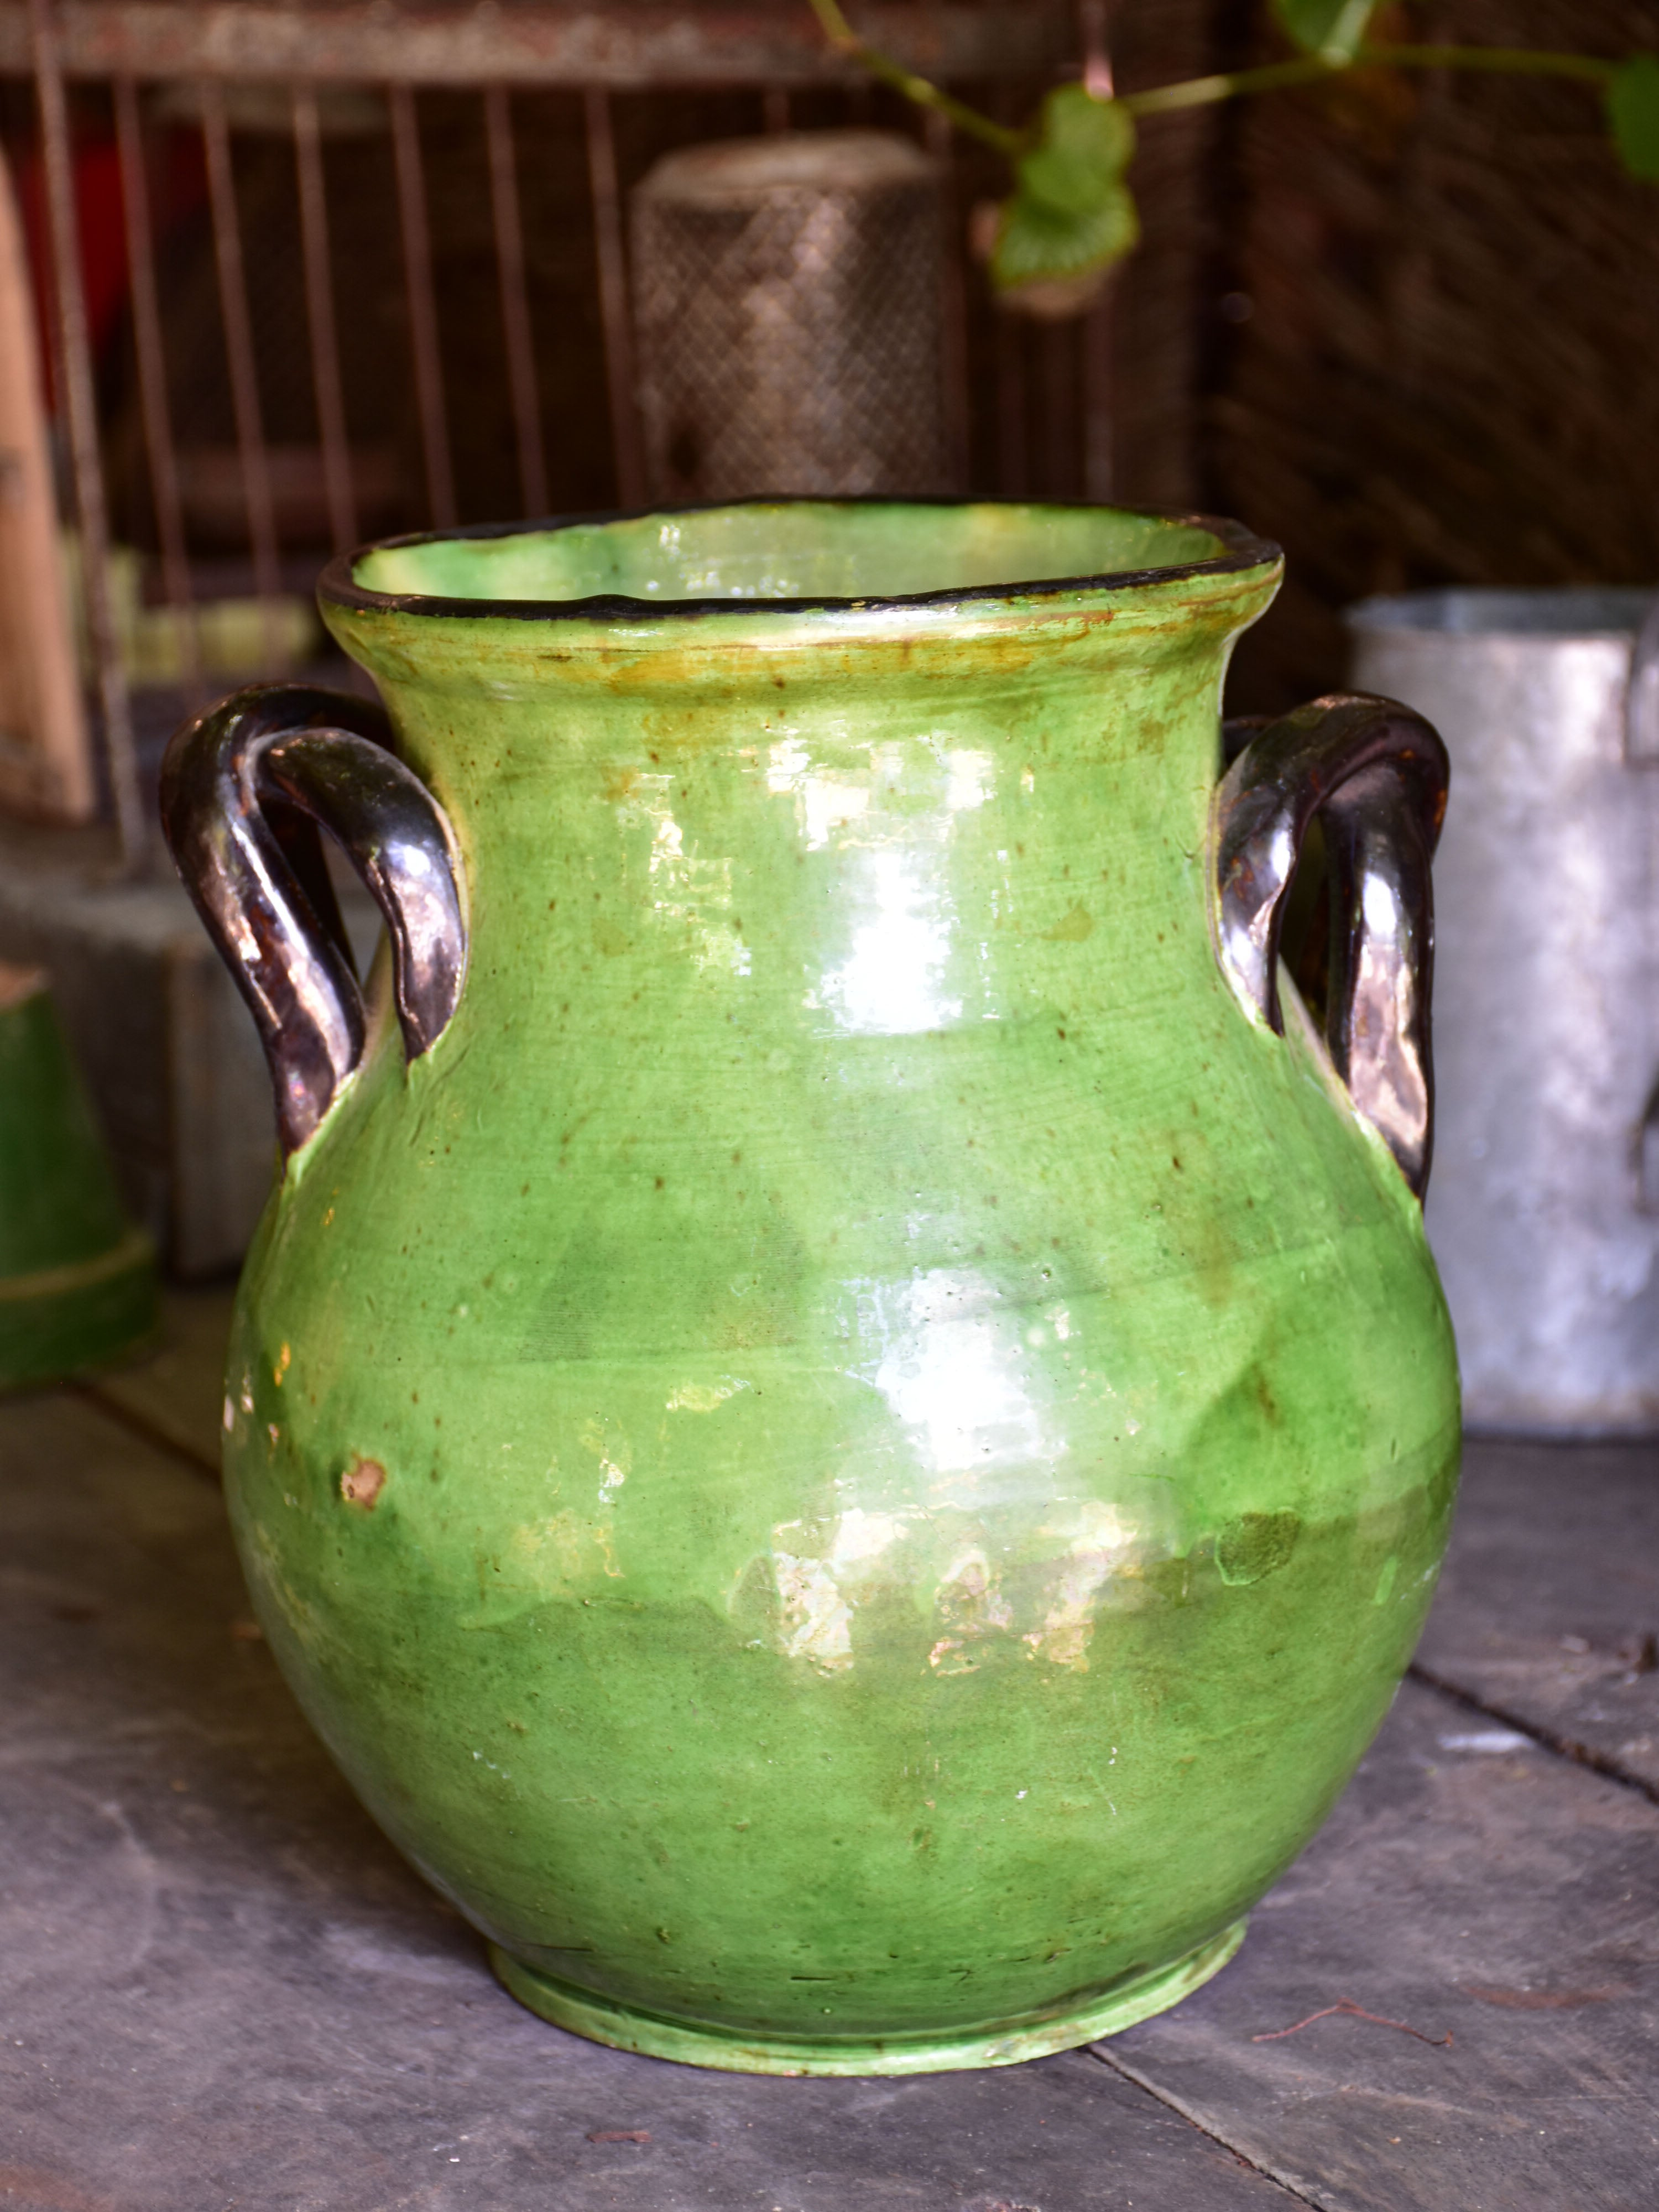 Rare green glazed vase with pretty black handles from the Ardeche